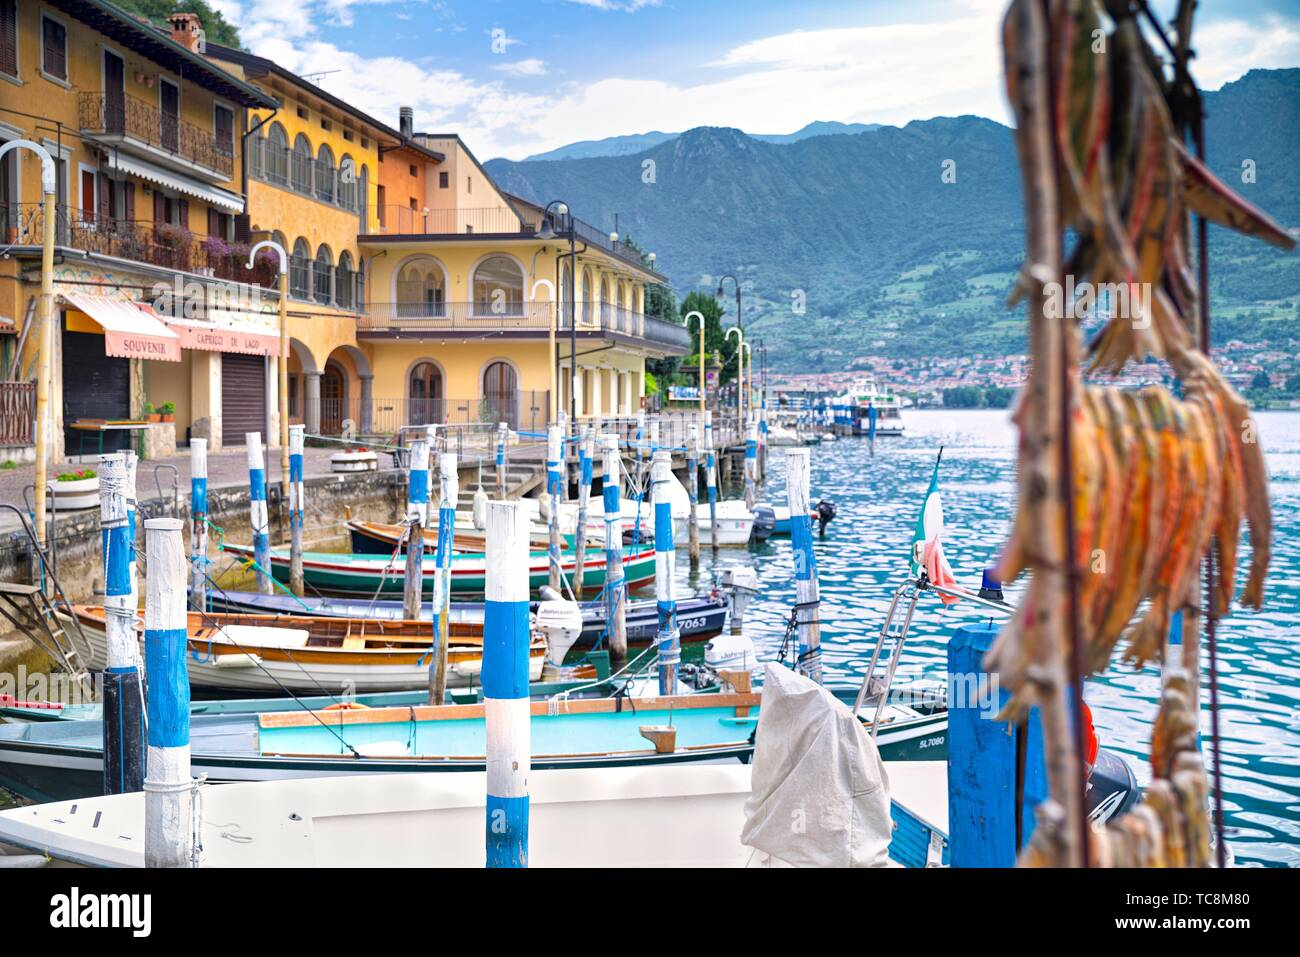 Monte Isola, Peschiera Maraglio town  with fisherman boats Stock Photo